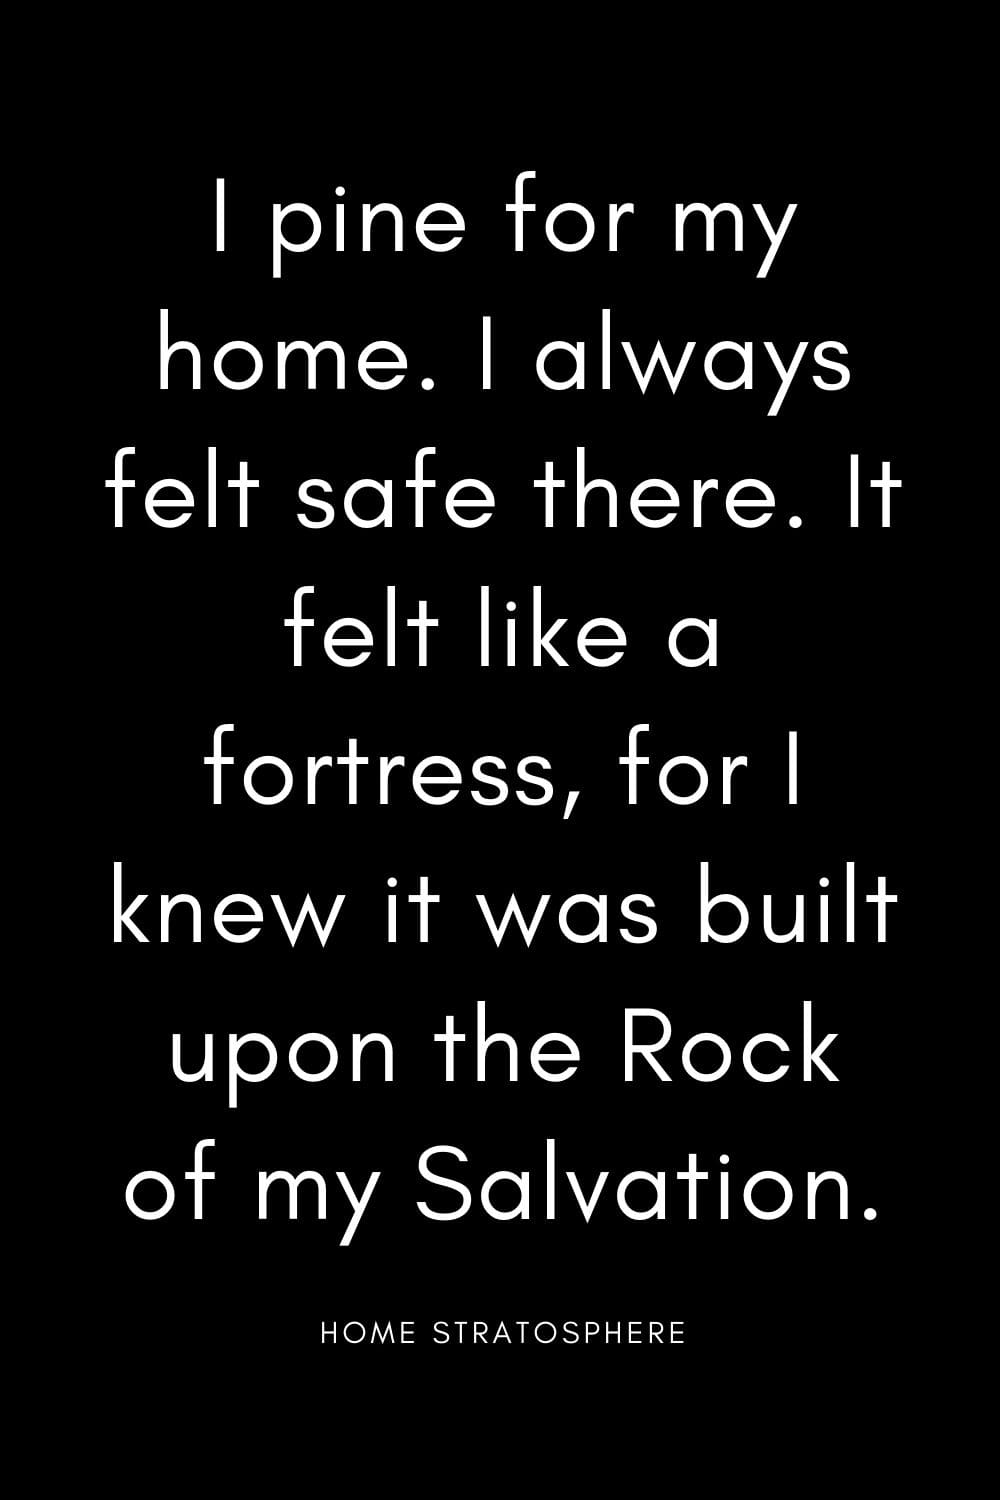 """I pine for my home. I always felt safe there. It felt like a fortress, for I knew it was built upon the Rock of my Salvation."""